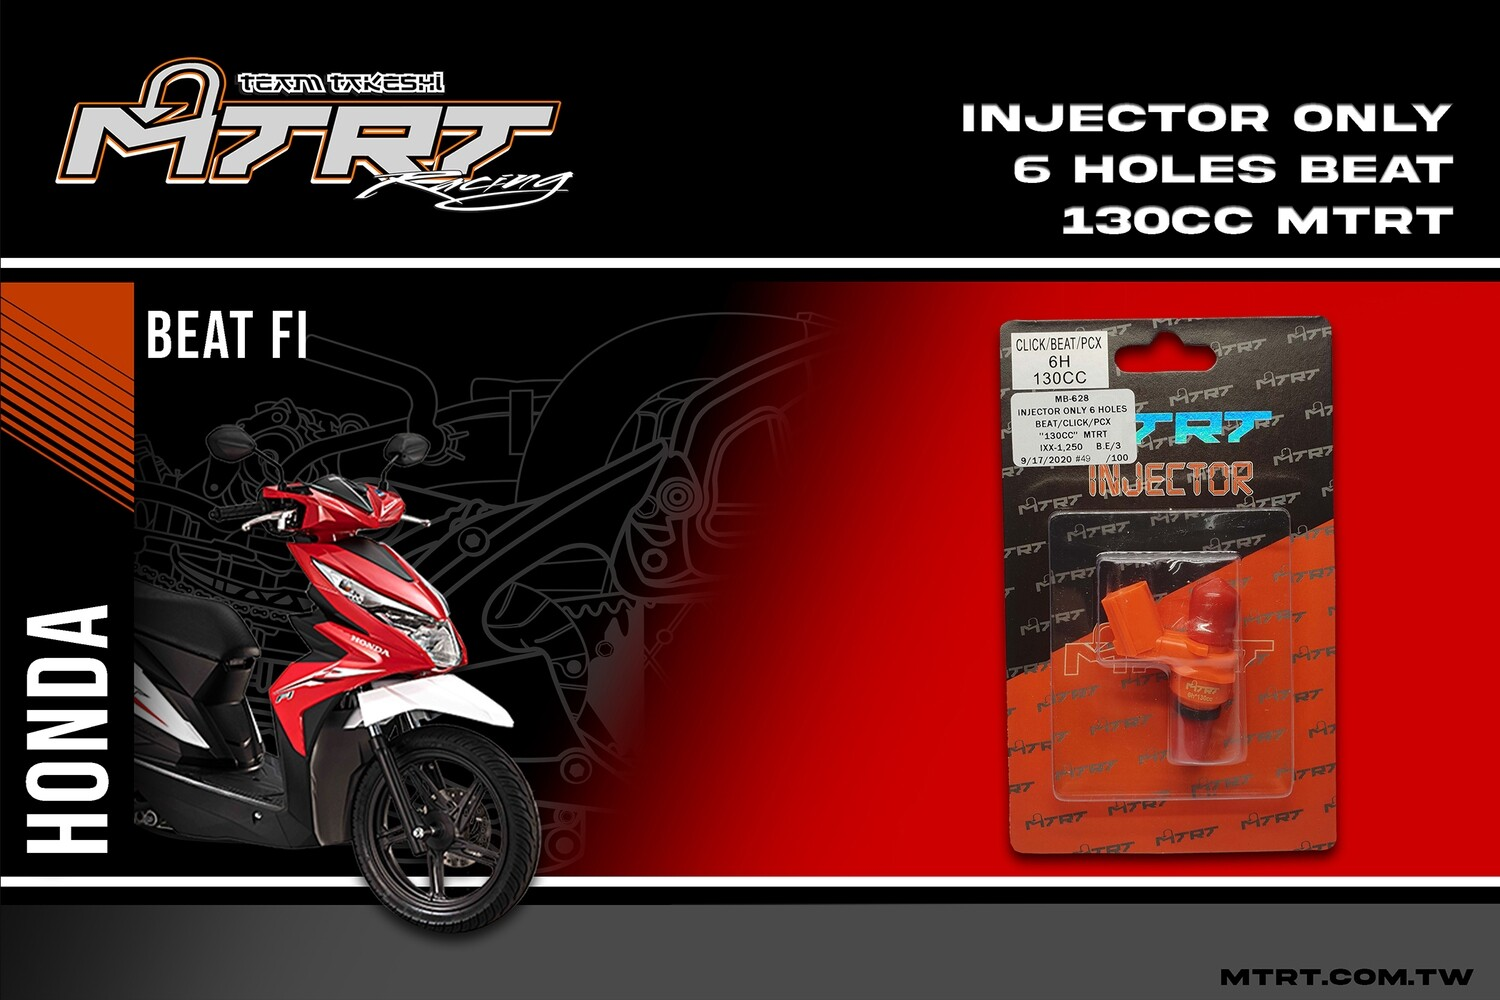 INJECTOR ONLY 6HOLES BEAT CLICK PCX 130CC MTRT